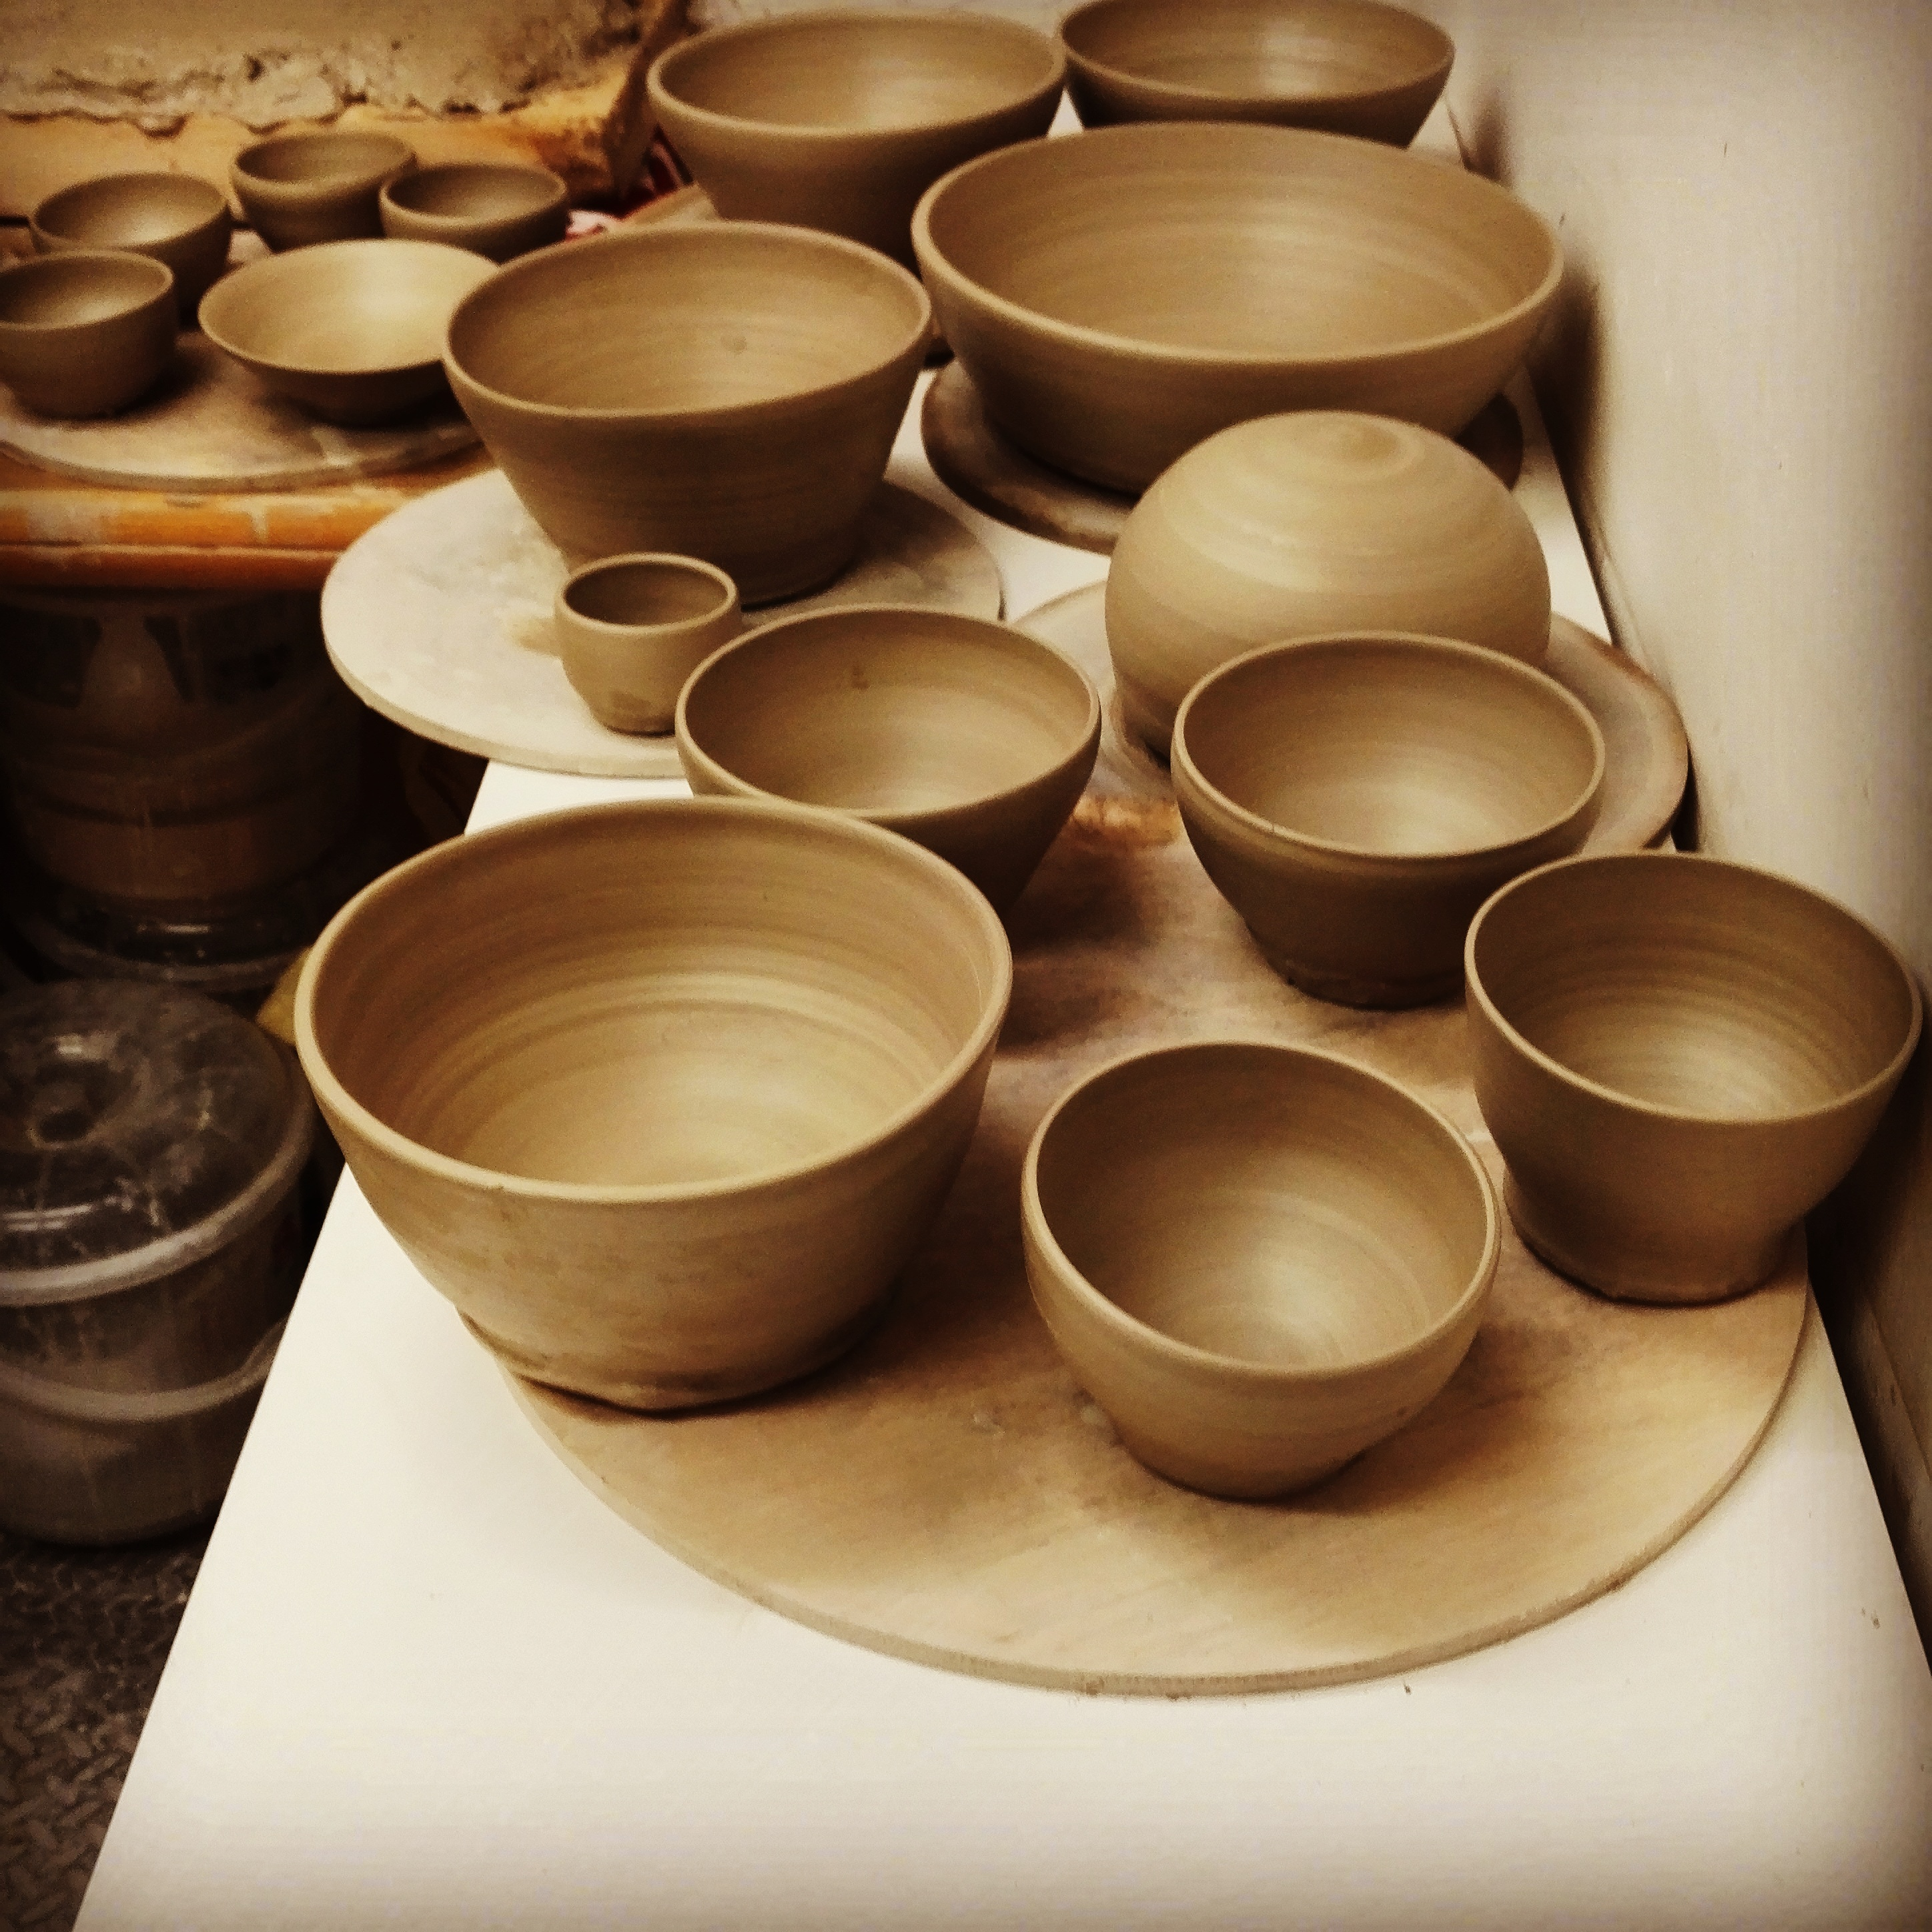 Beginners Pottery Wheel Class by Suzan Art Pottery - art in London